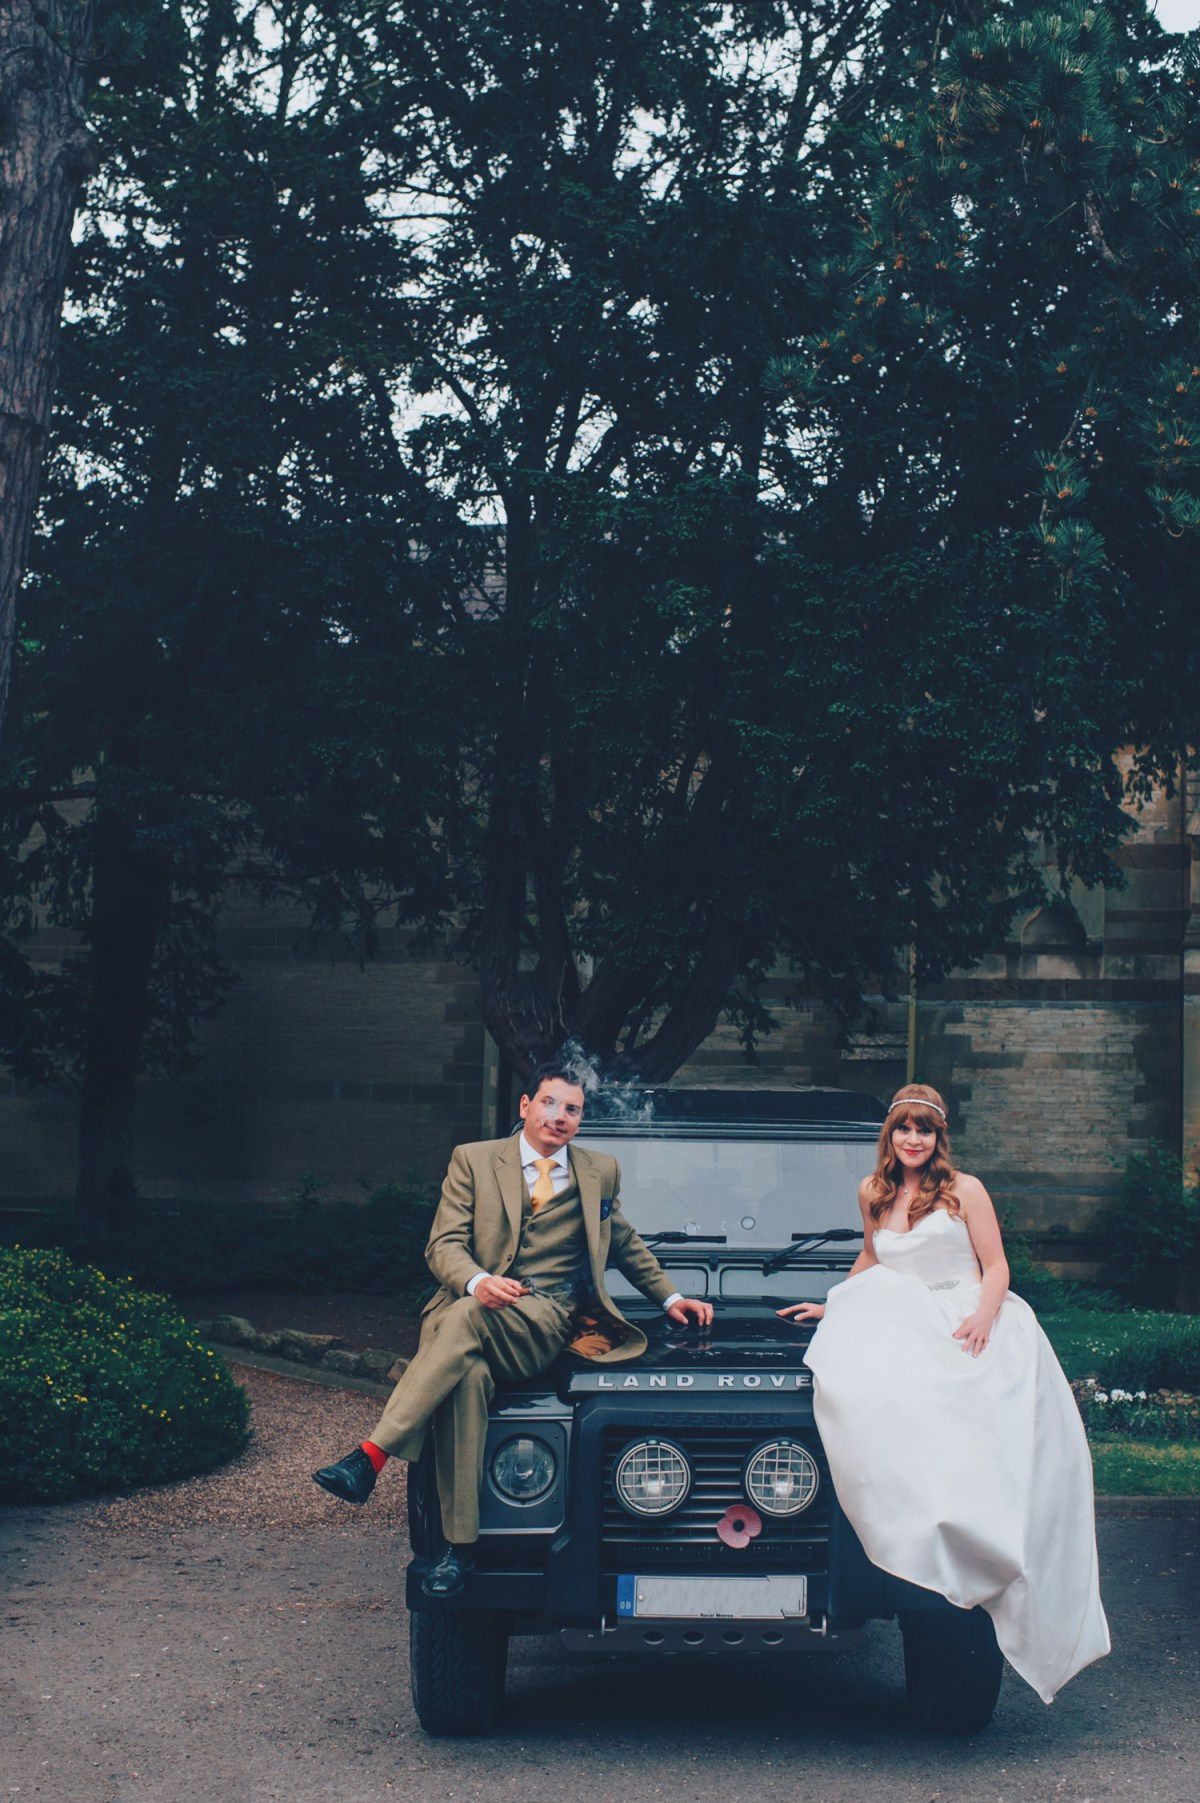 ettington-park-hotel-evening-portrait-bride-groom-landrover